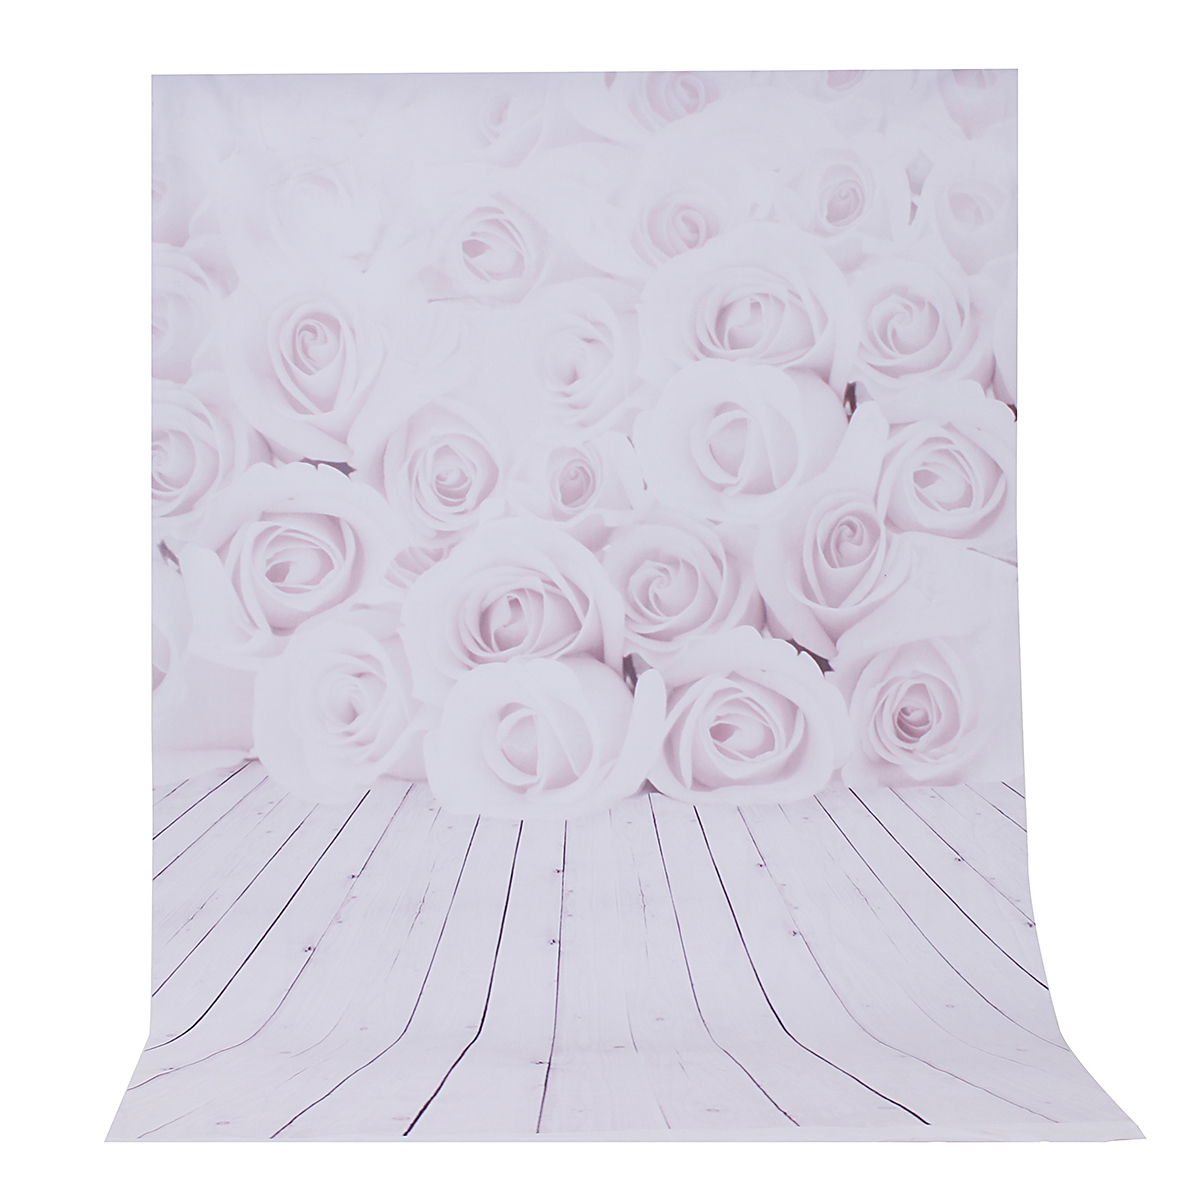 3x5ft Pink Rose Theme Photography Vinyl Backdrop Studio Background 0.9m x 1.5m